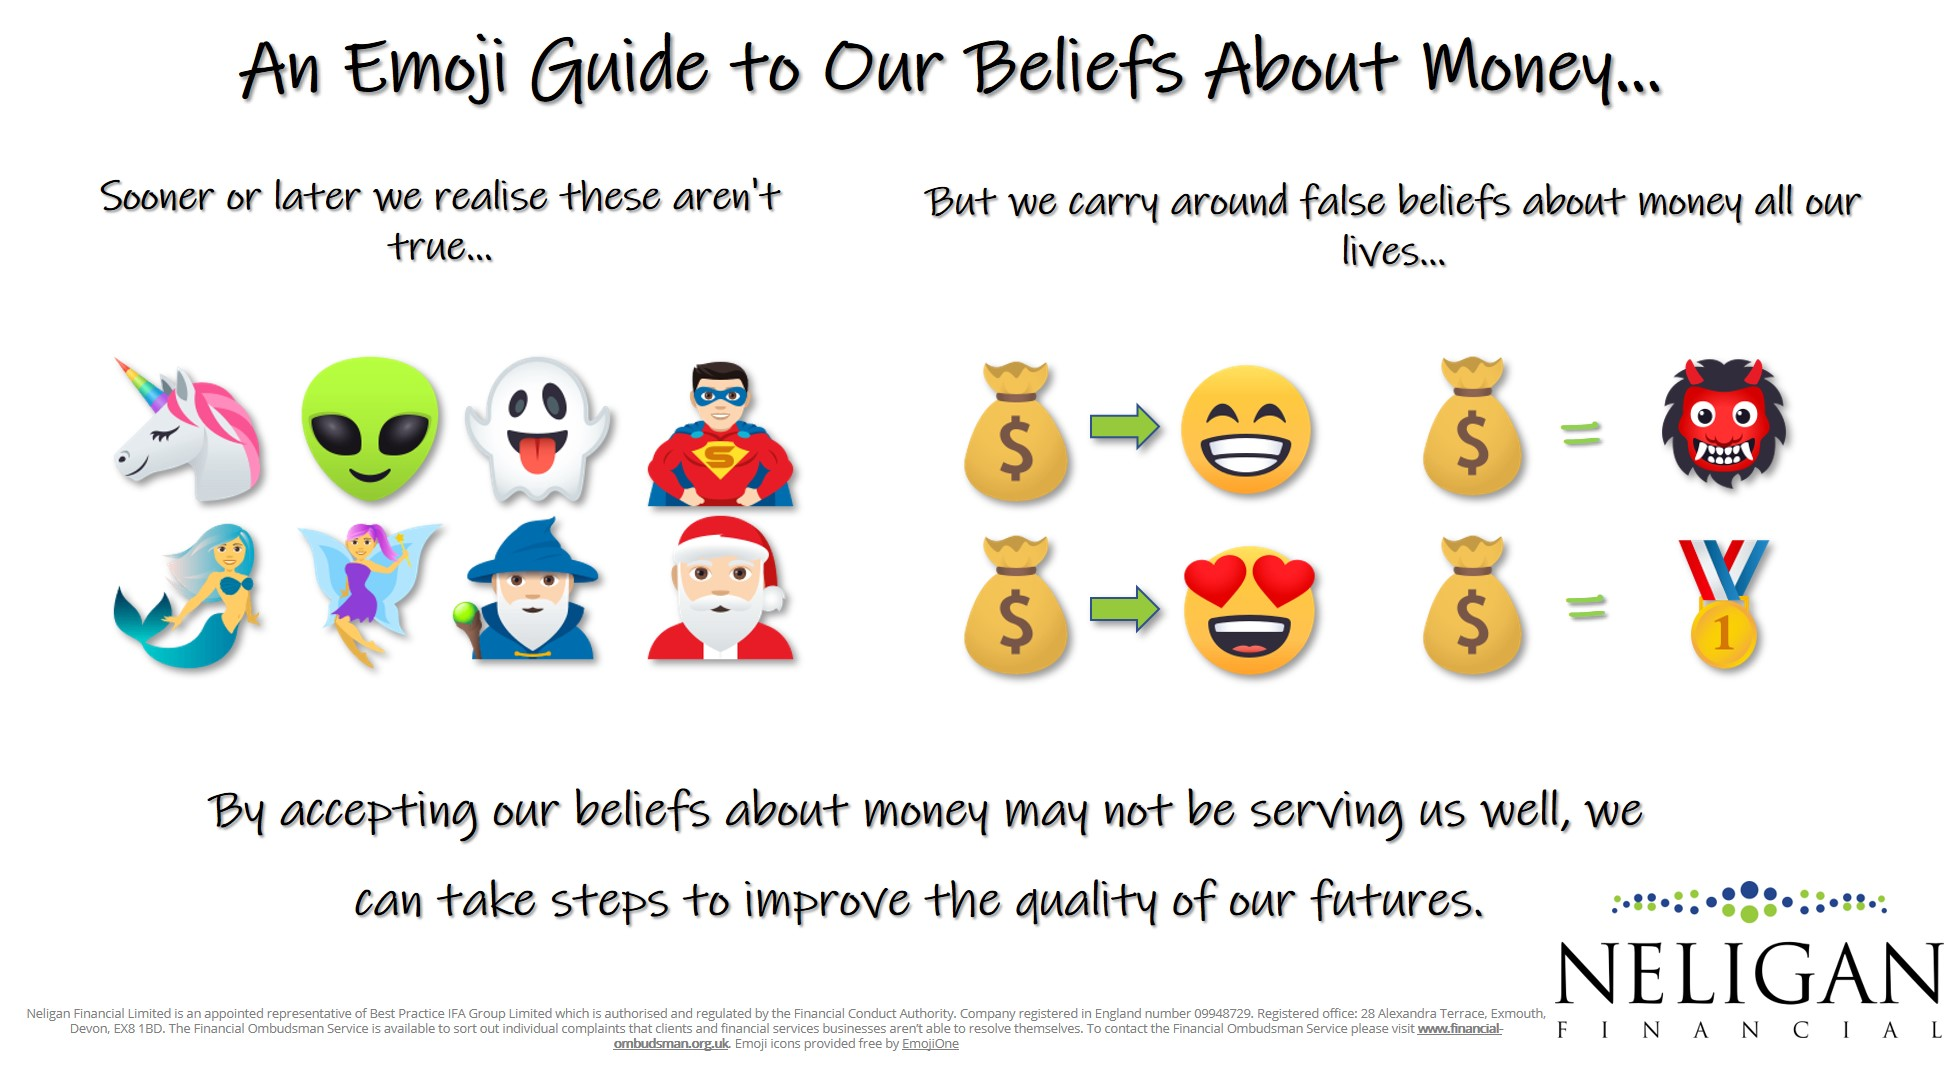 Beliefs About Money